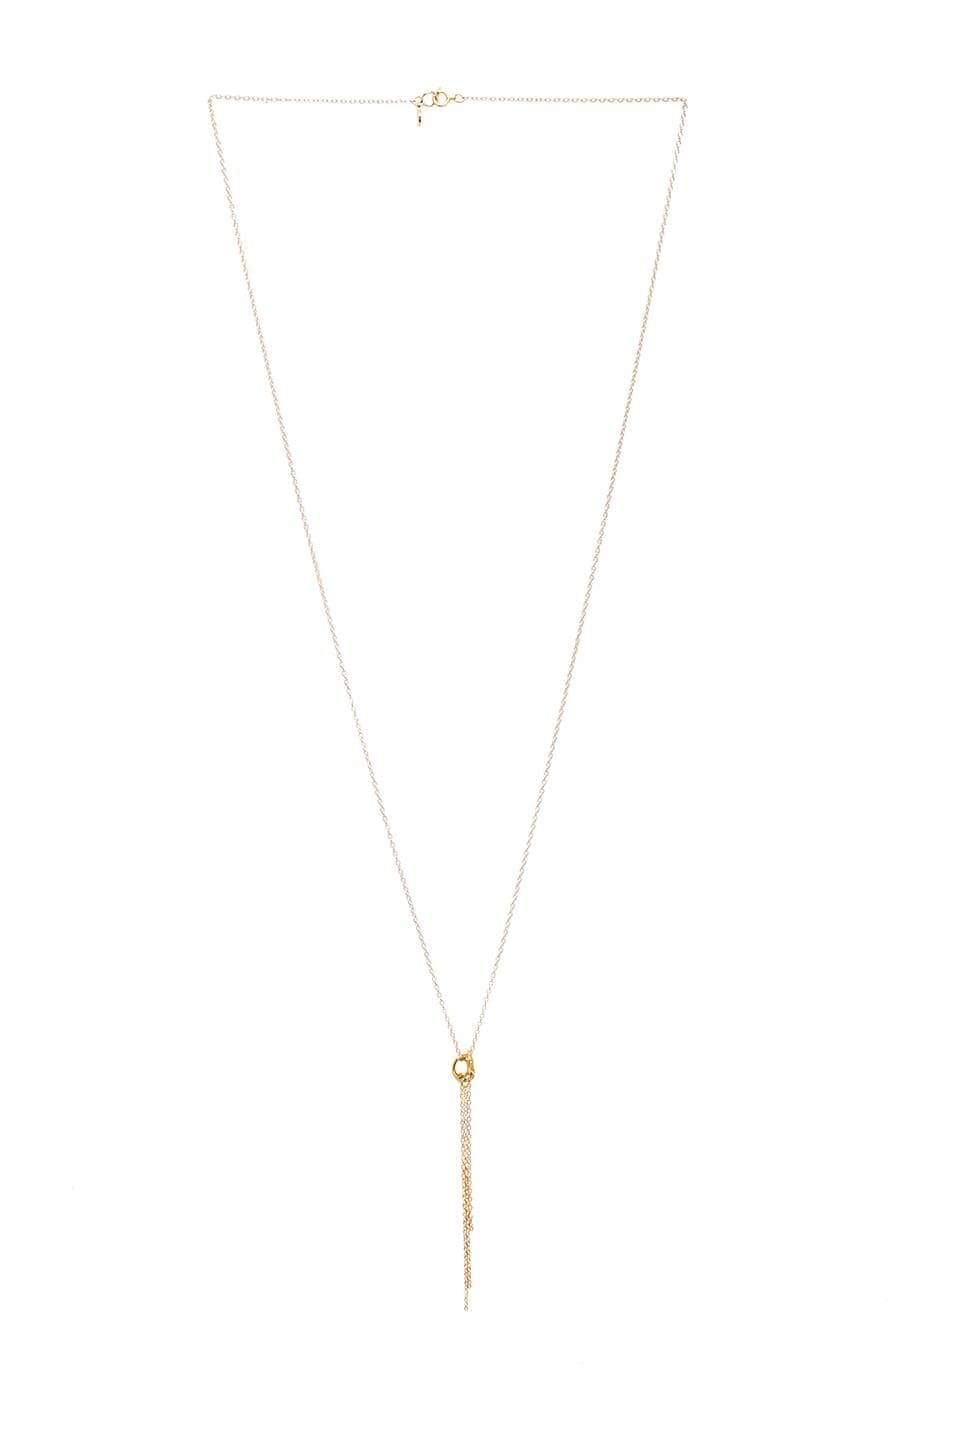 gorjana Infinity II Tiered Long Necklace in Gold